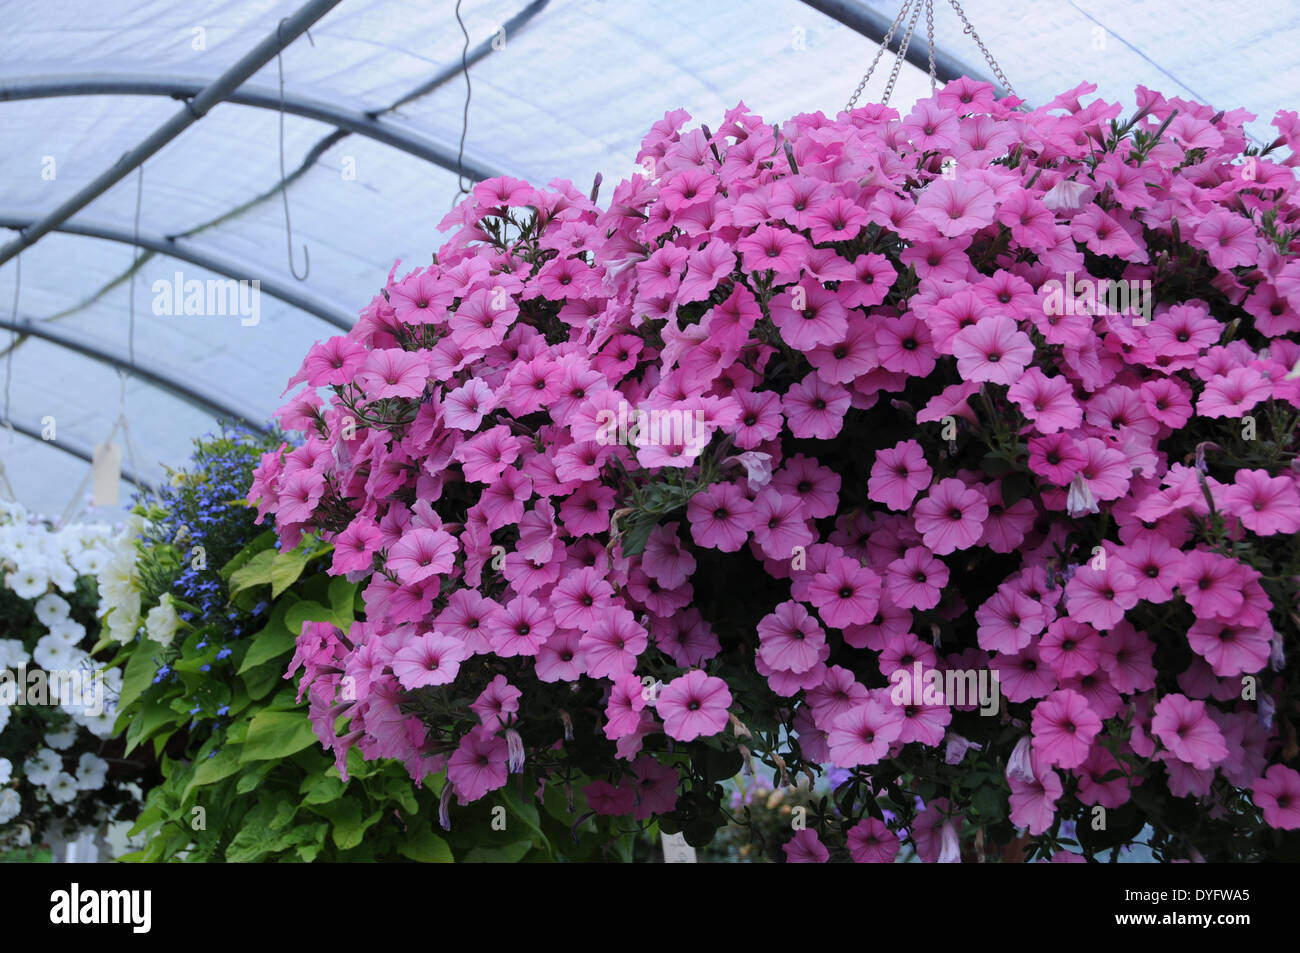 Petunia white pink red purple yellow hanging basket pricilla stock petunia white pink red purple yellow hanging basket pricilla mightylinksfo